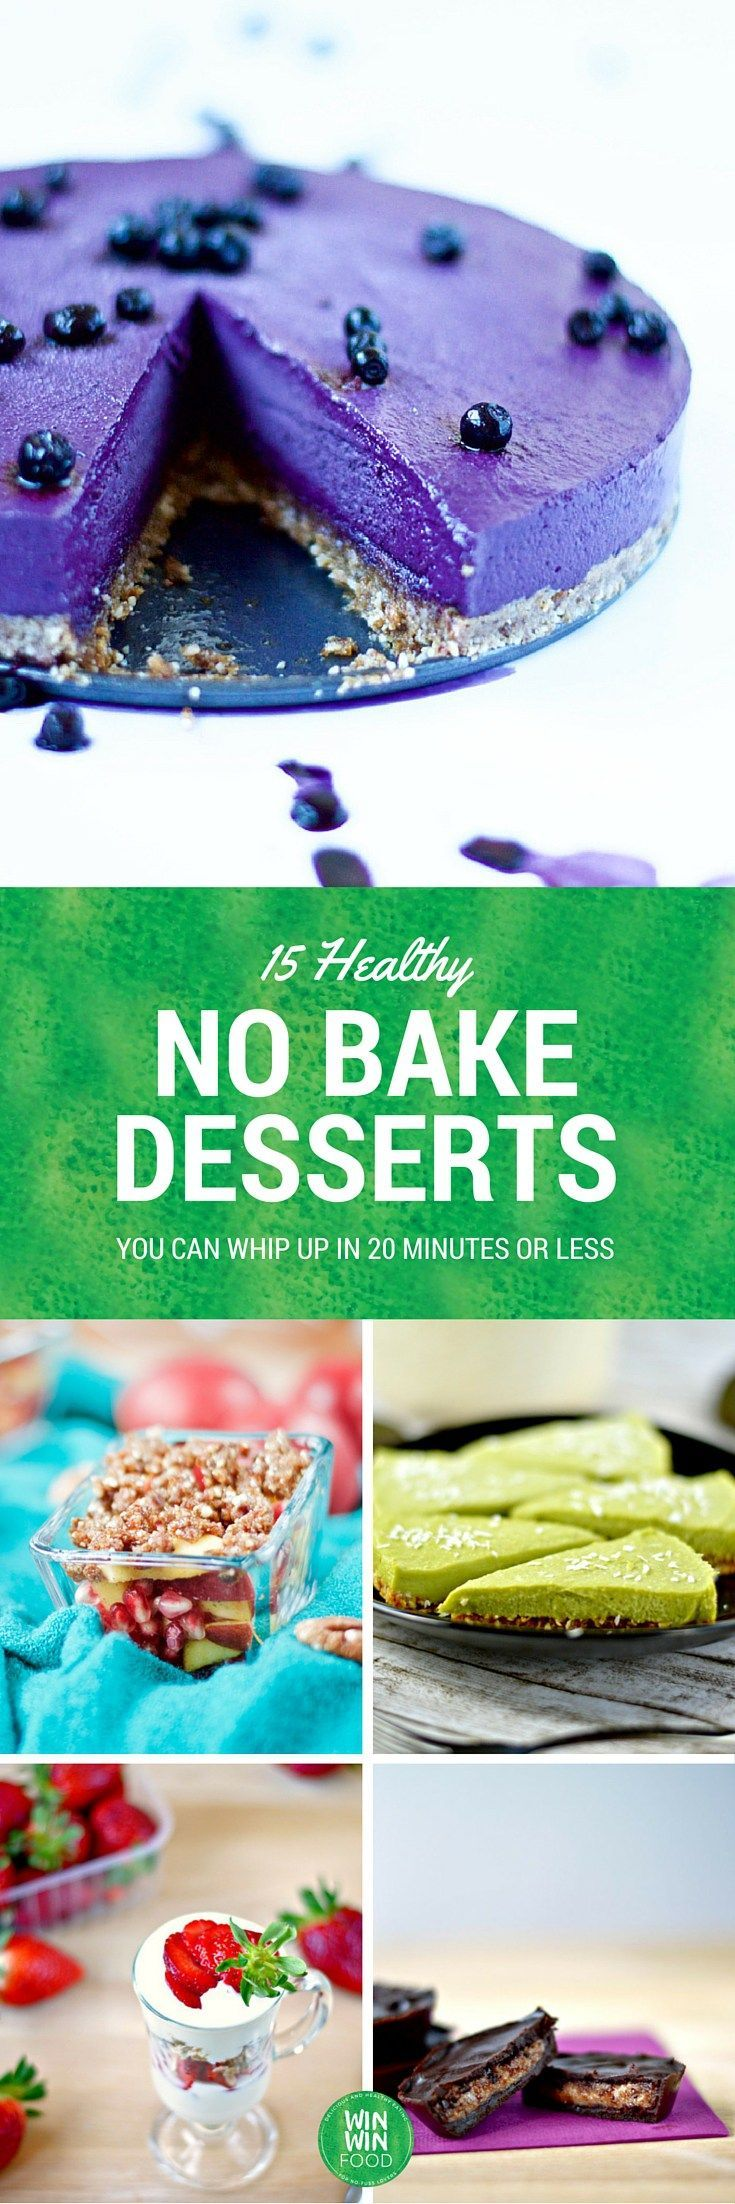 15 Healthy No Bake Desserts You Can Whip Up in 20 Minutes or Less | WIN-WINFOOD.com #healthy #vegan #glutenfree